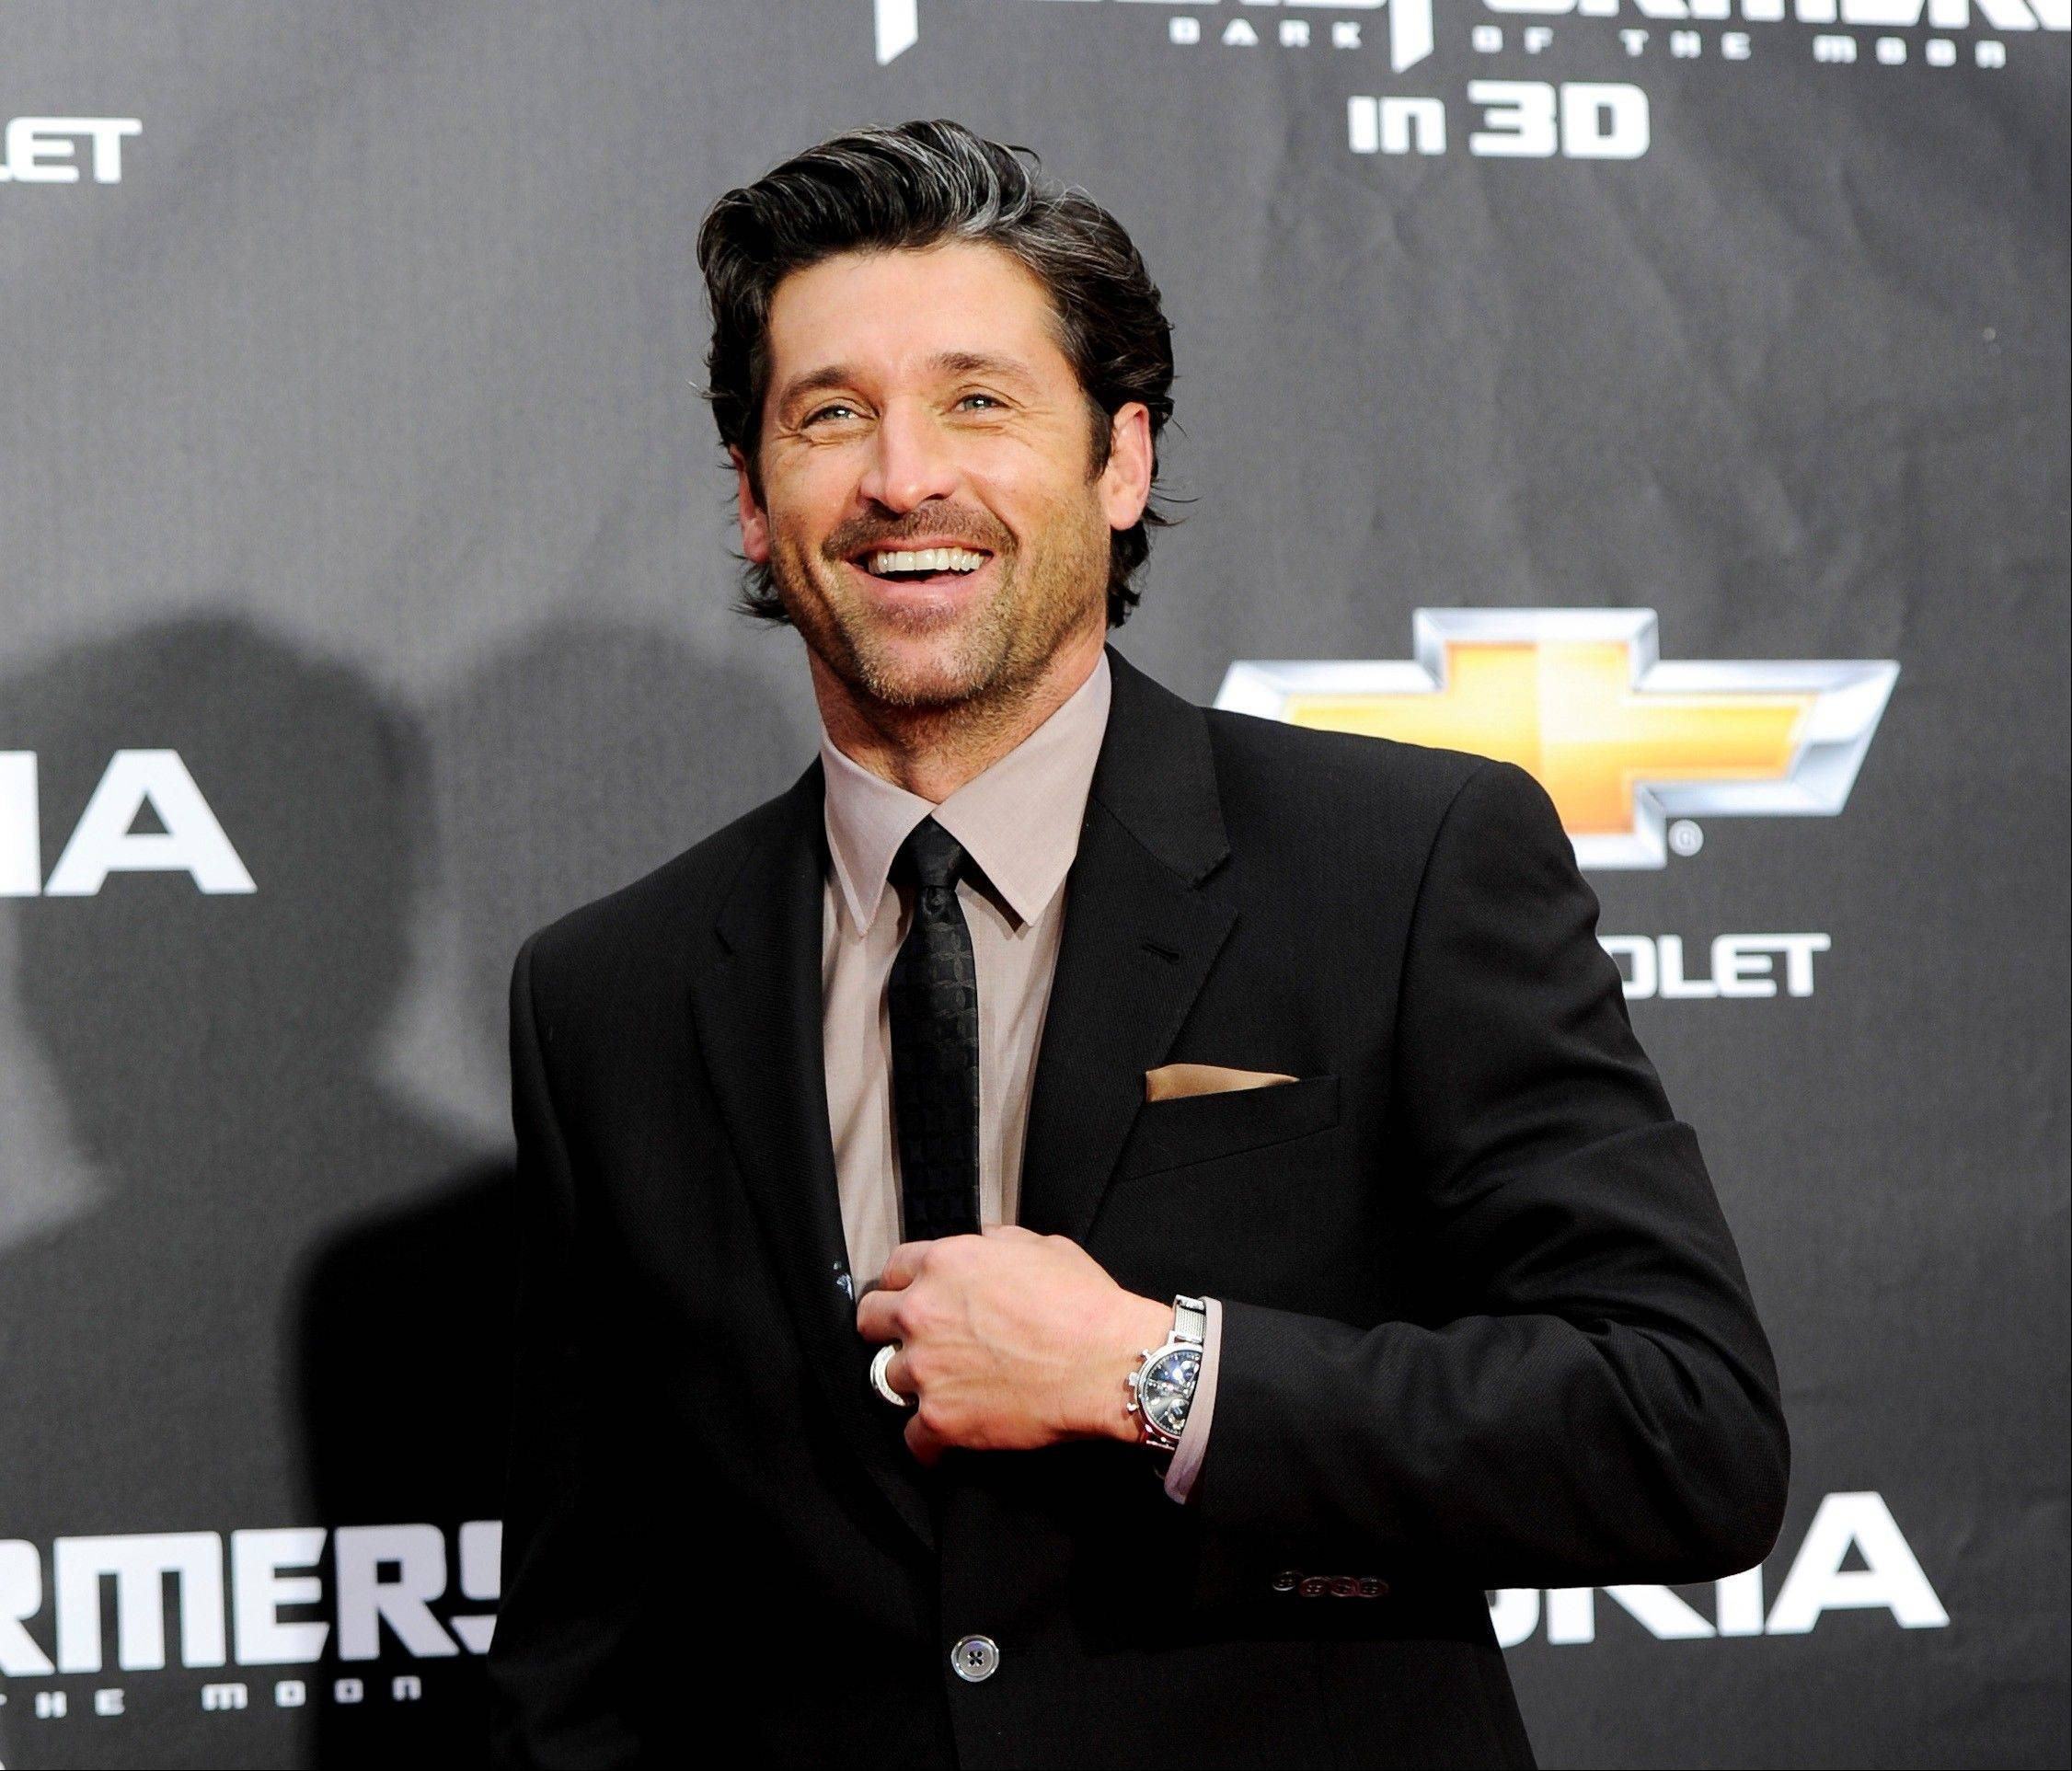 Actor Patrick Dempsey announced late Thursday that his company, Global Baristas LLC, made the winning bid for Tully's Coffee.